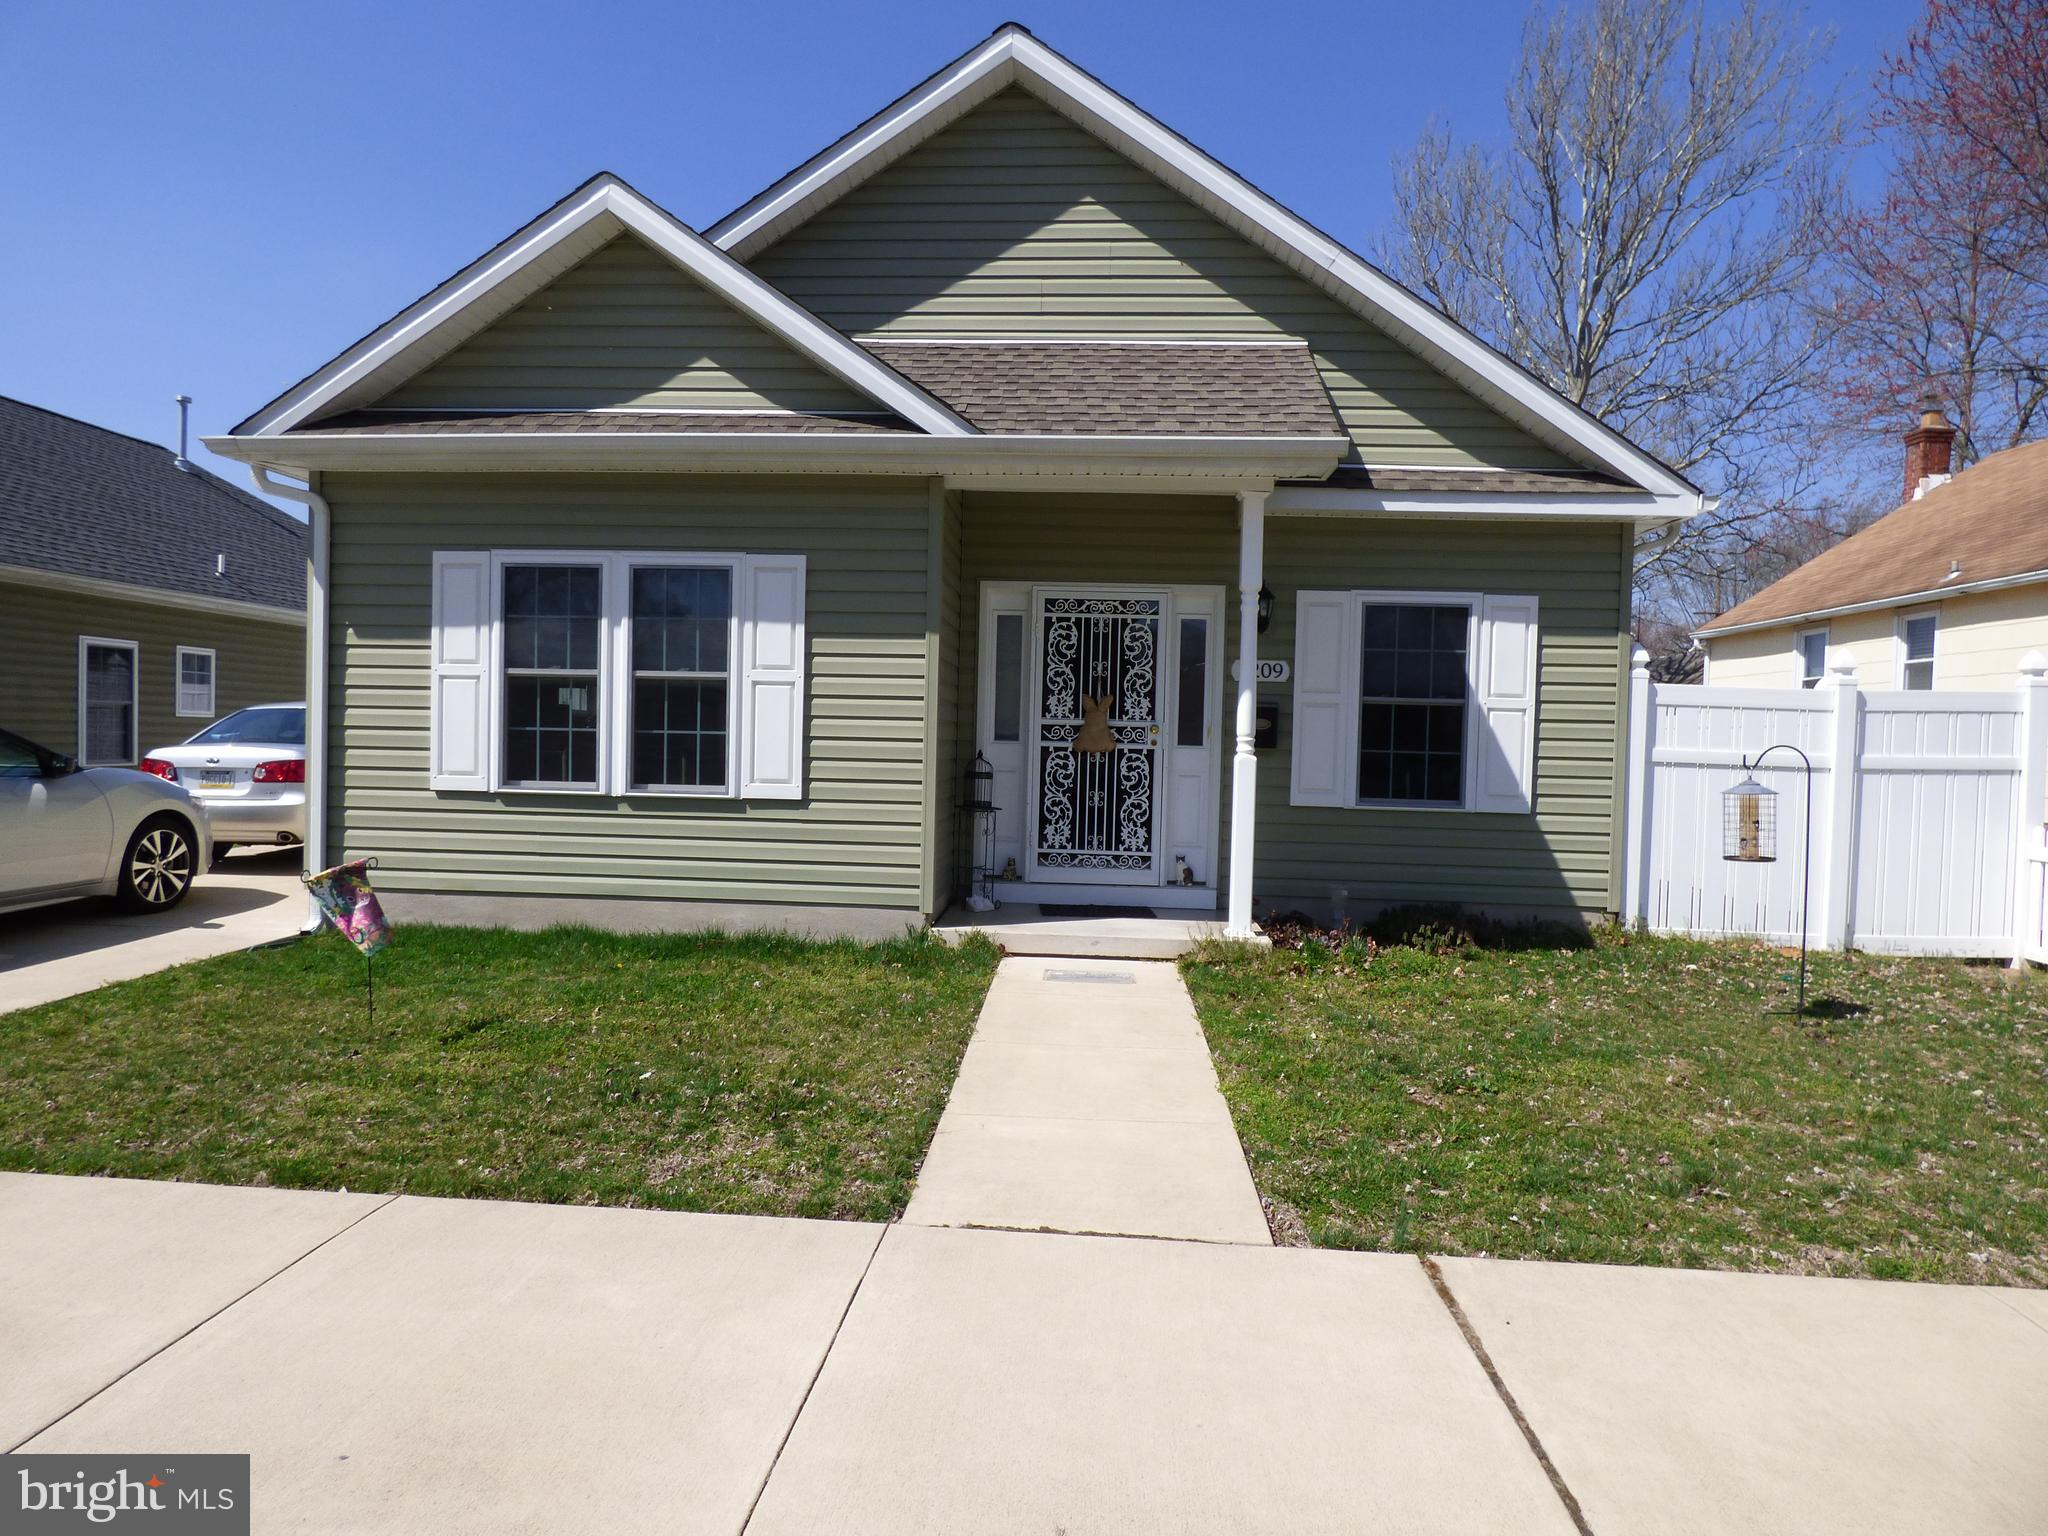 19020 2 Bedroom Home For Sale